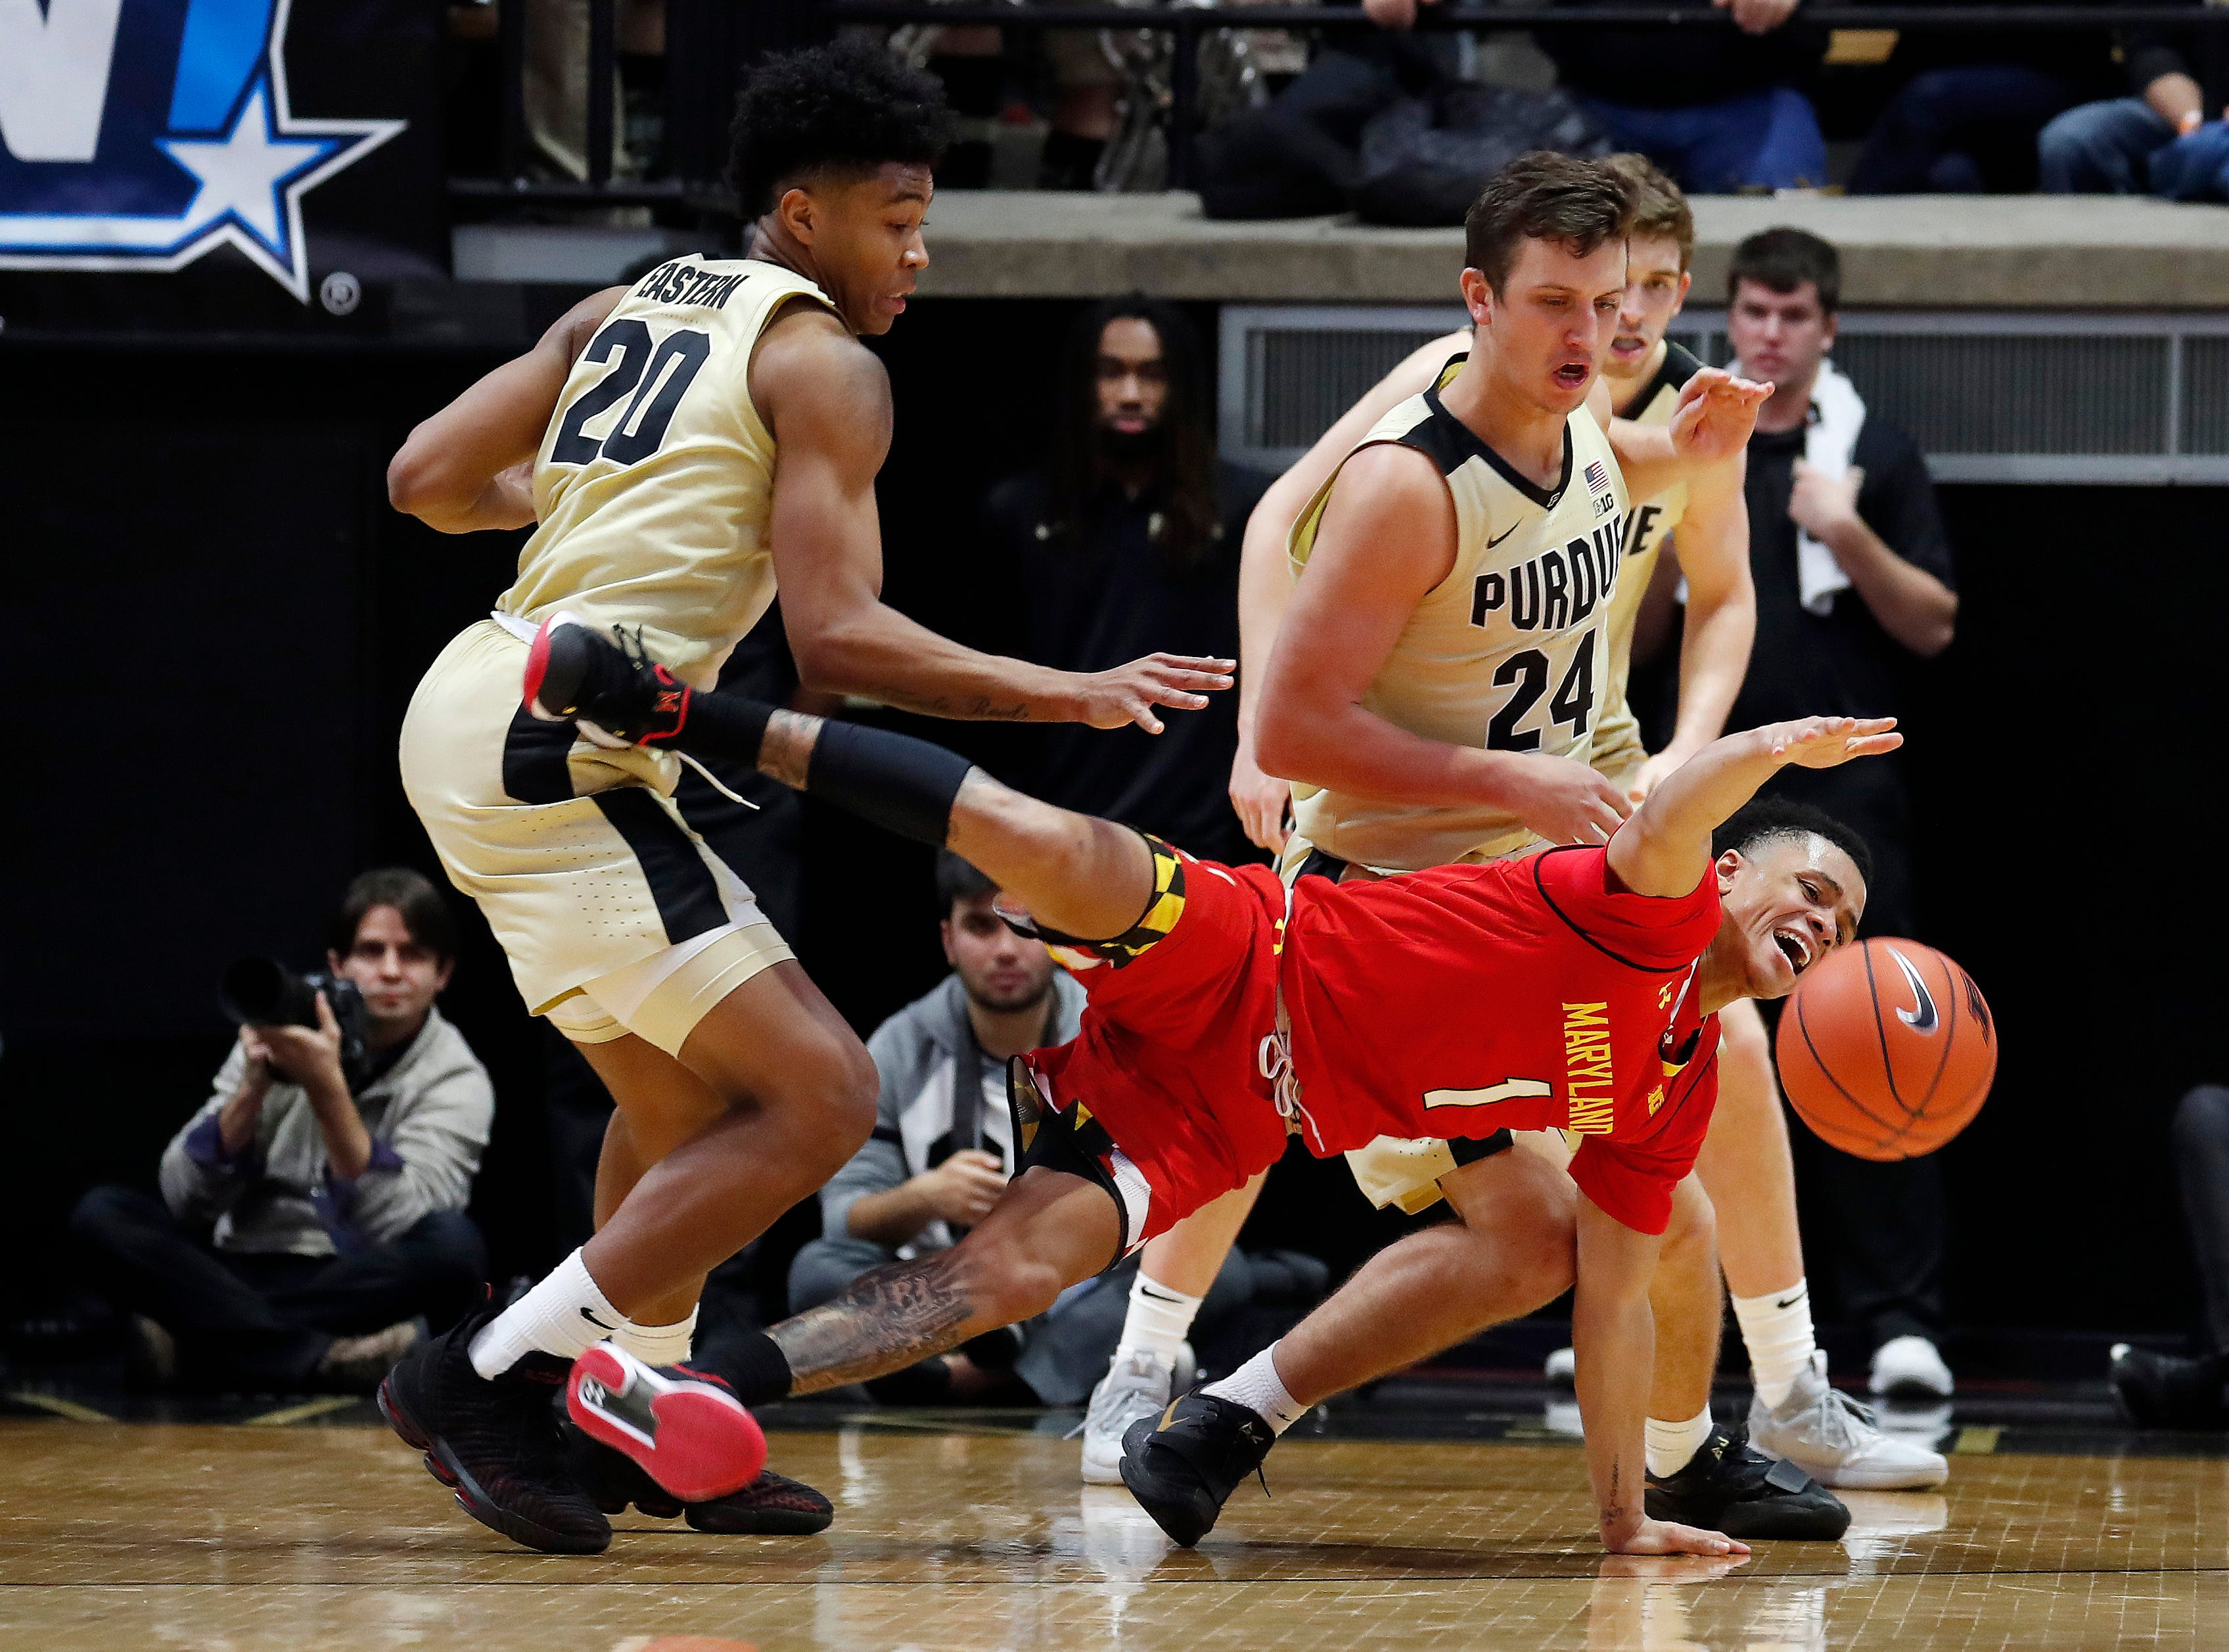 Maryland Terrapins guard Anthony Cowan Jr. (1) scrambles for a loose ball against Purdue Boilermakers forward Grady Eifert (24) during the second half at Mackey Arena.